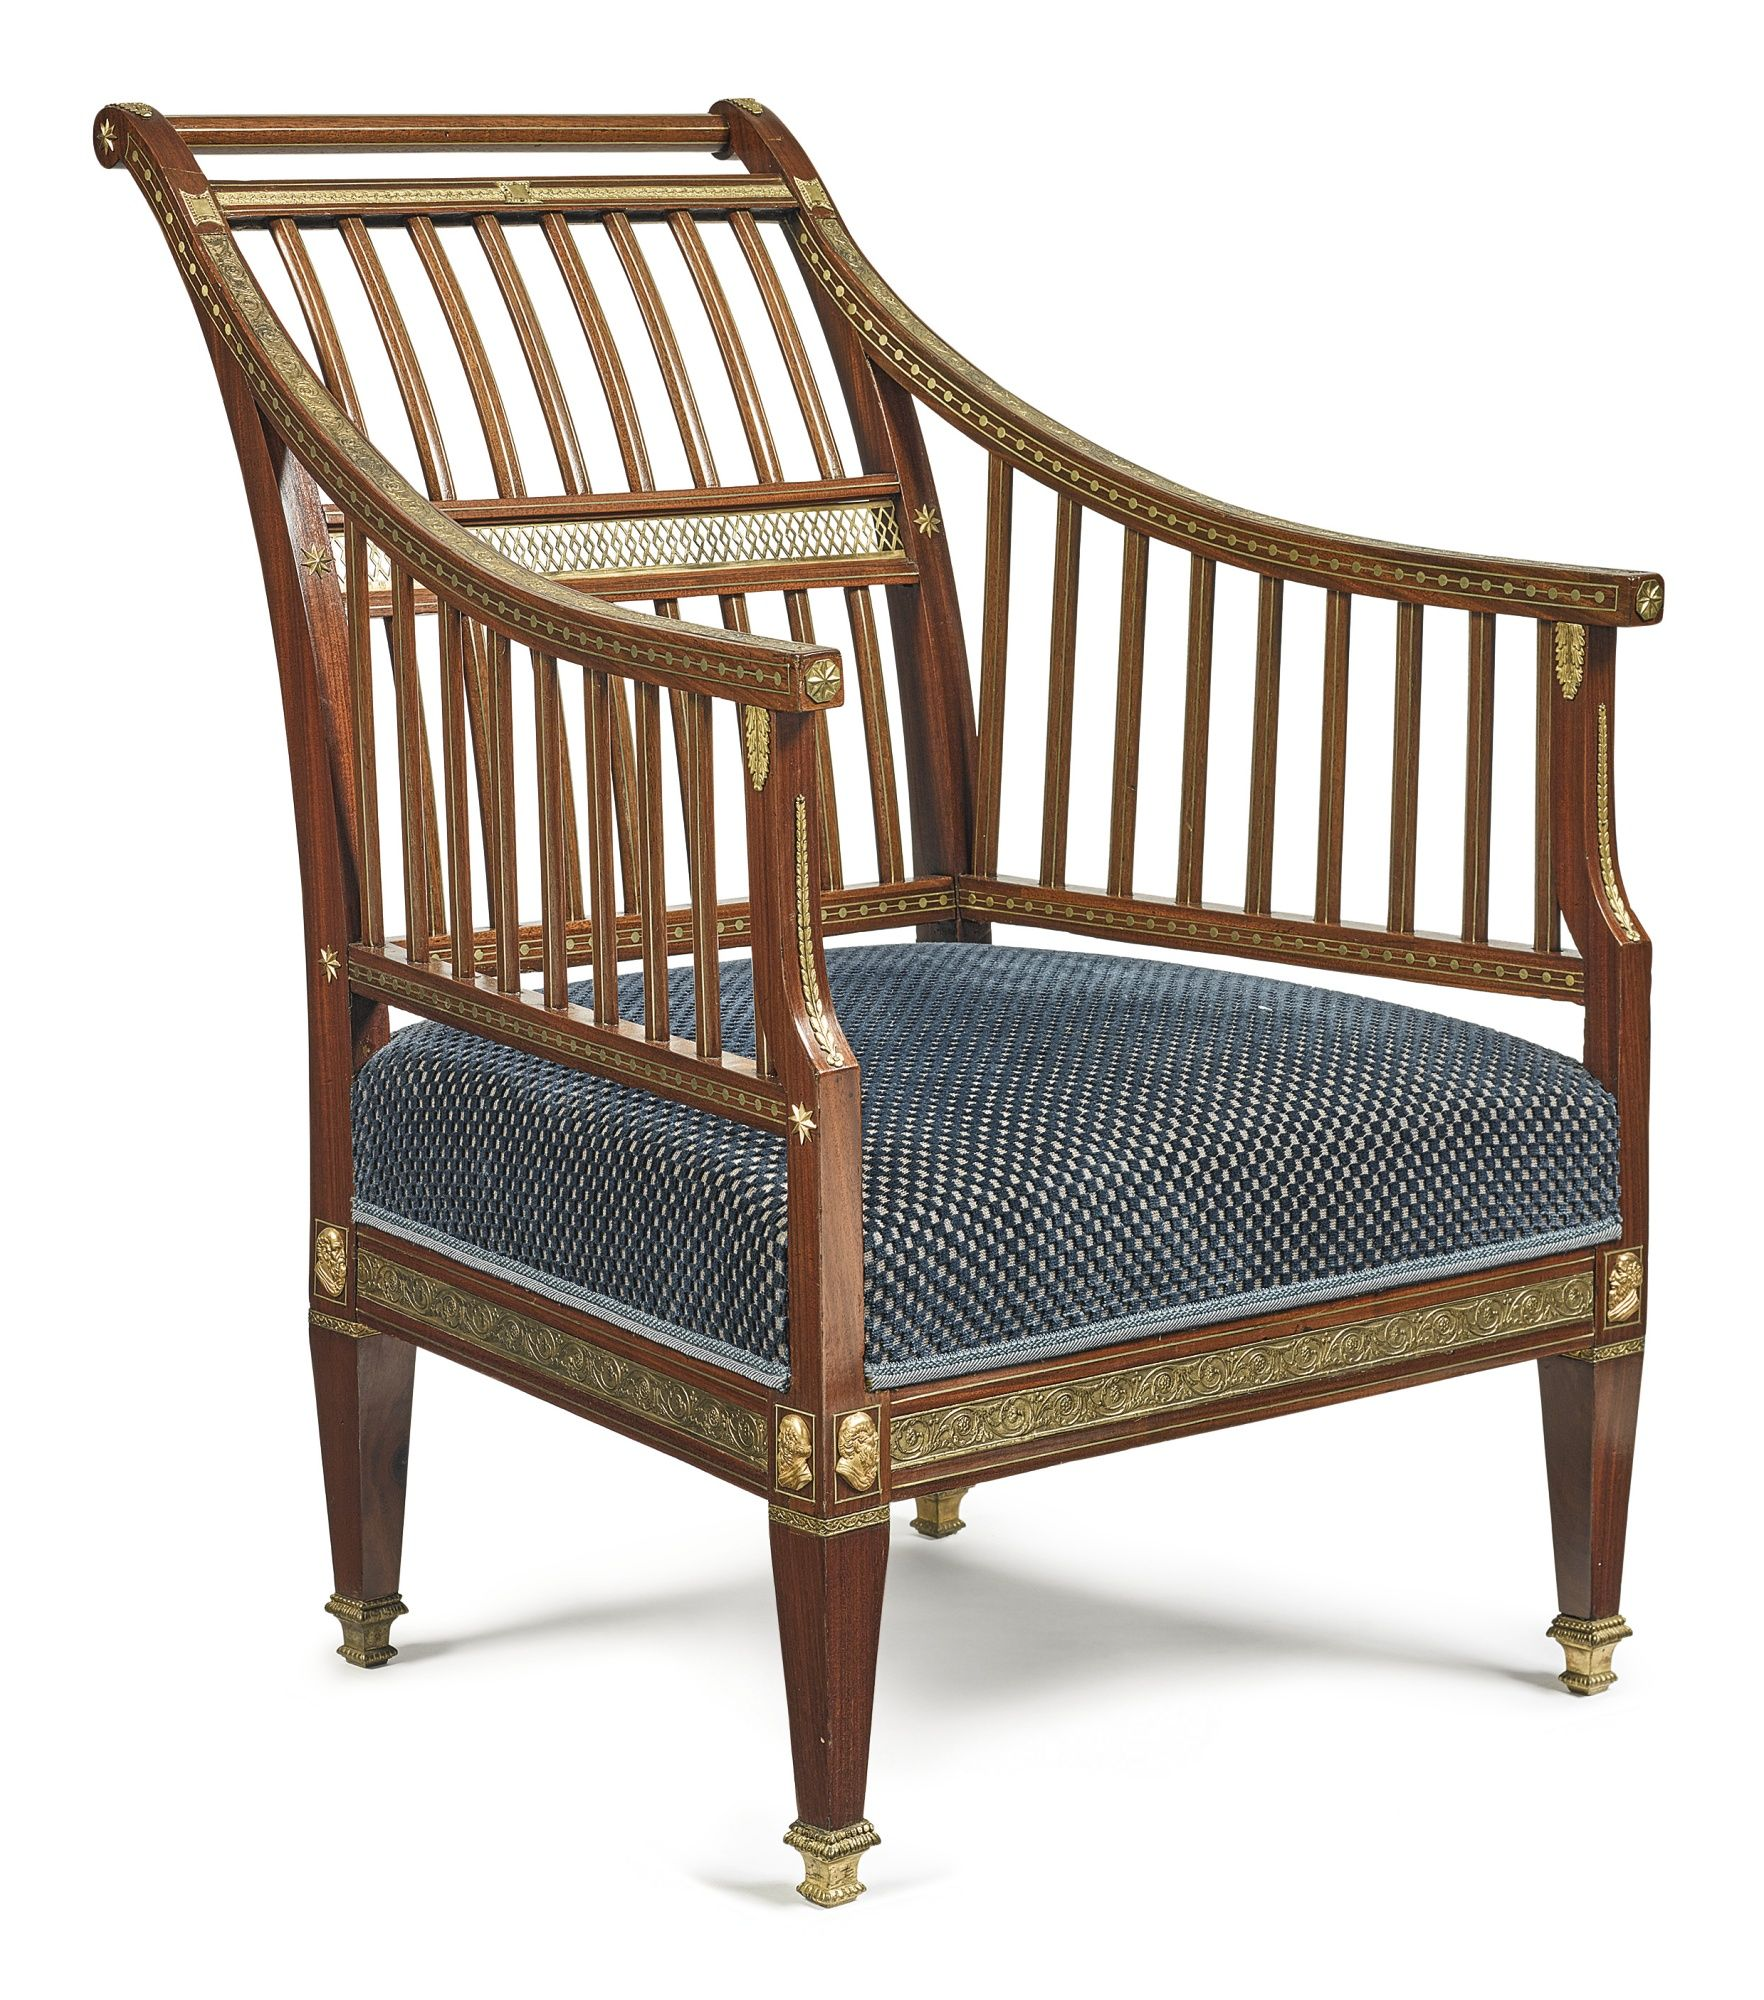 Authentic egyptian furniture - Vintage Furniture